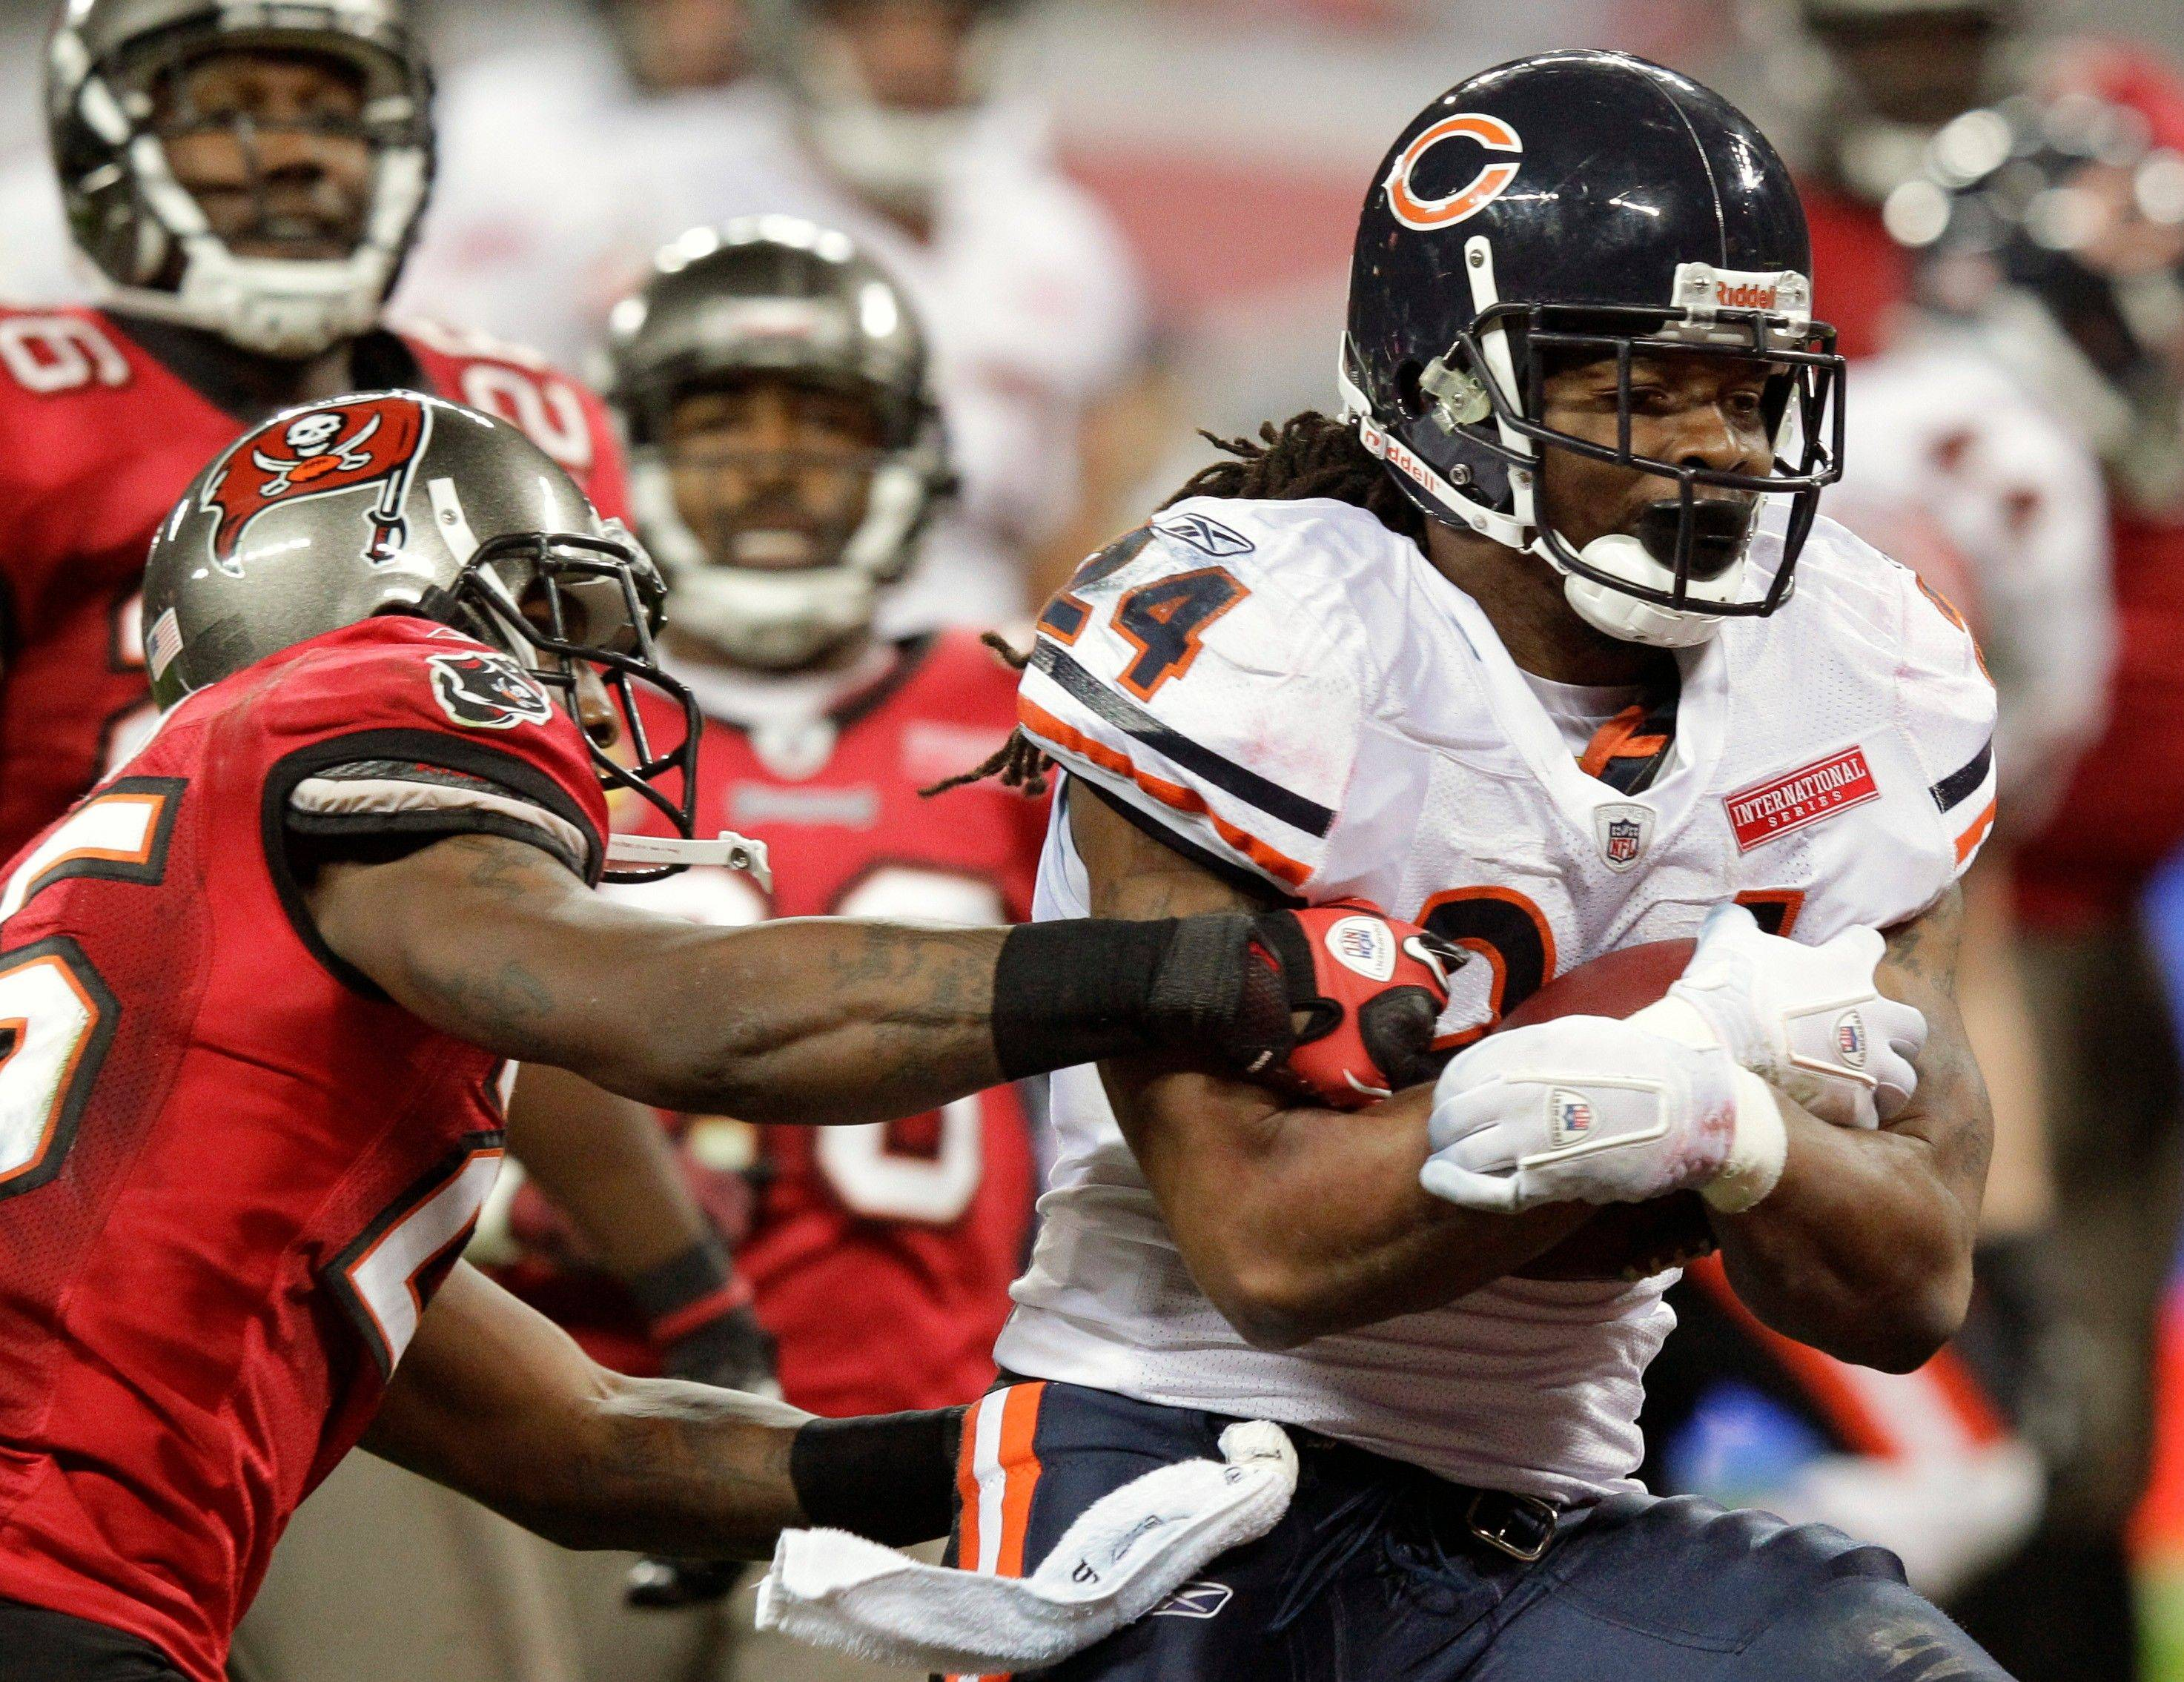 Chicago Bears running back Marion Barber runs past Tampa Bay Buccaneers cornerback Aqib Talib to score a 12-yard touchdown during the second half.